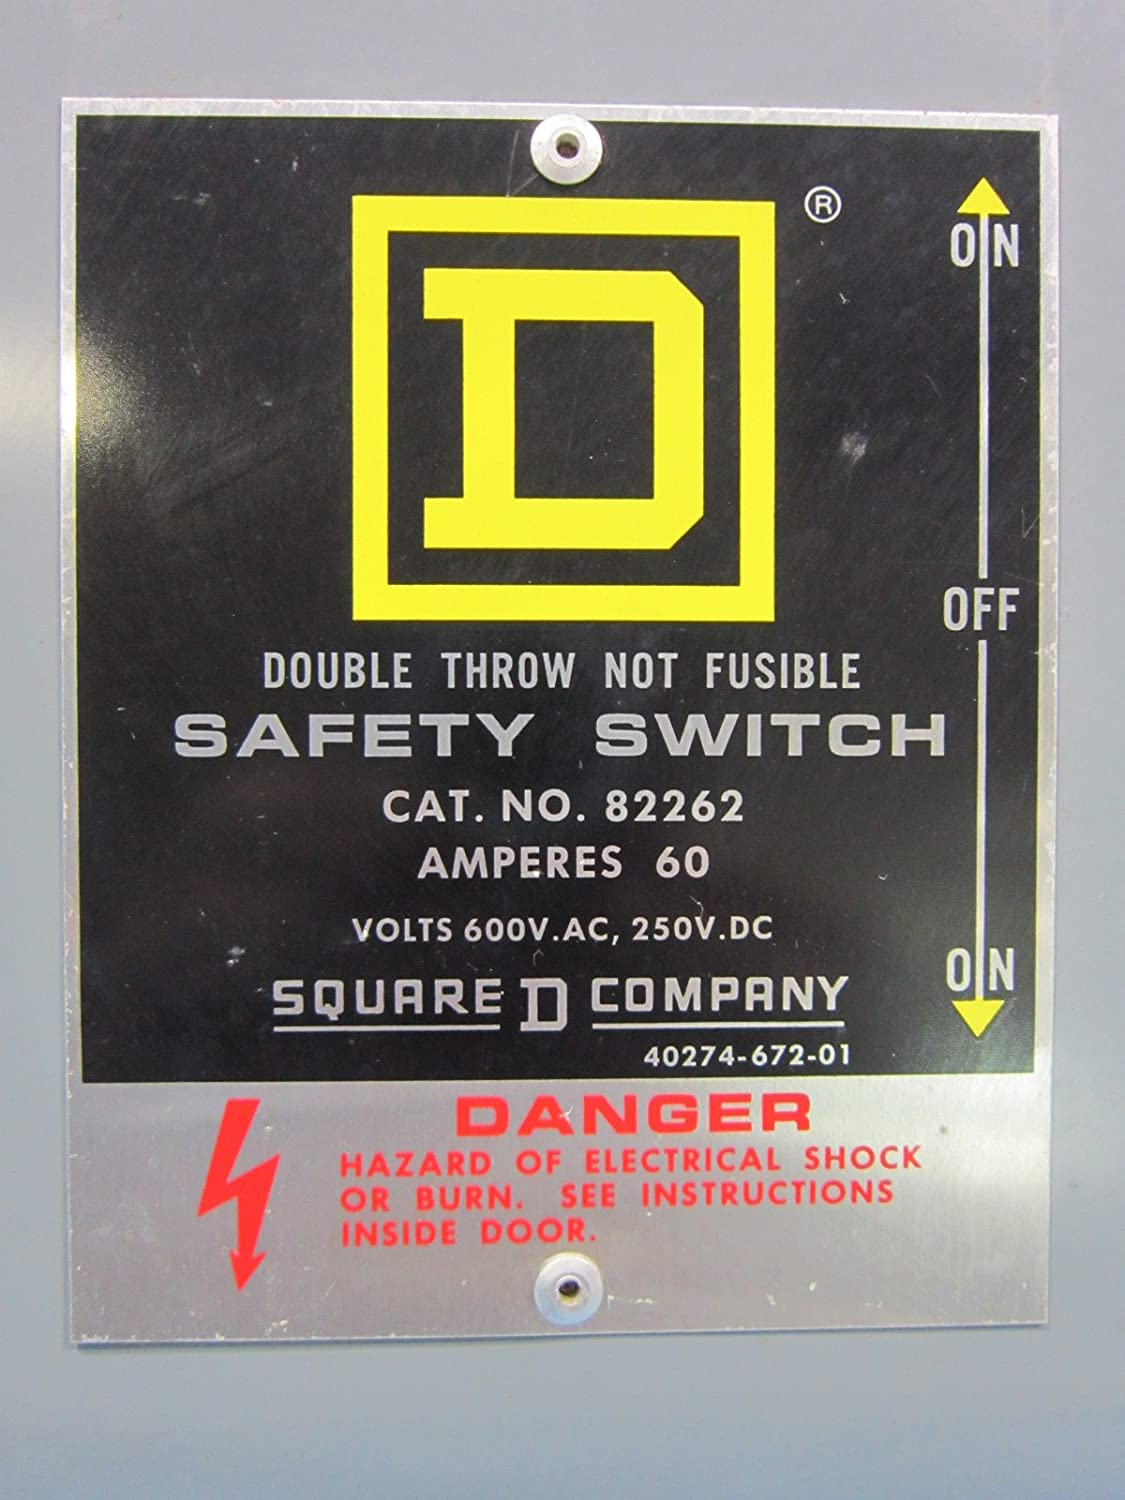 Hubbell Manual Transfer Switch How To Troubleshooting Install A Square D 82262 Double Throw Safety 60 Amp 600v Rh Amazon Com For Portable Generator 3 Phase